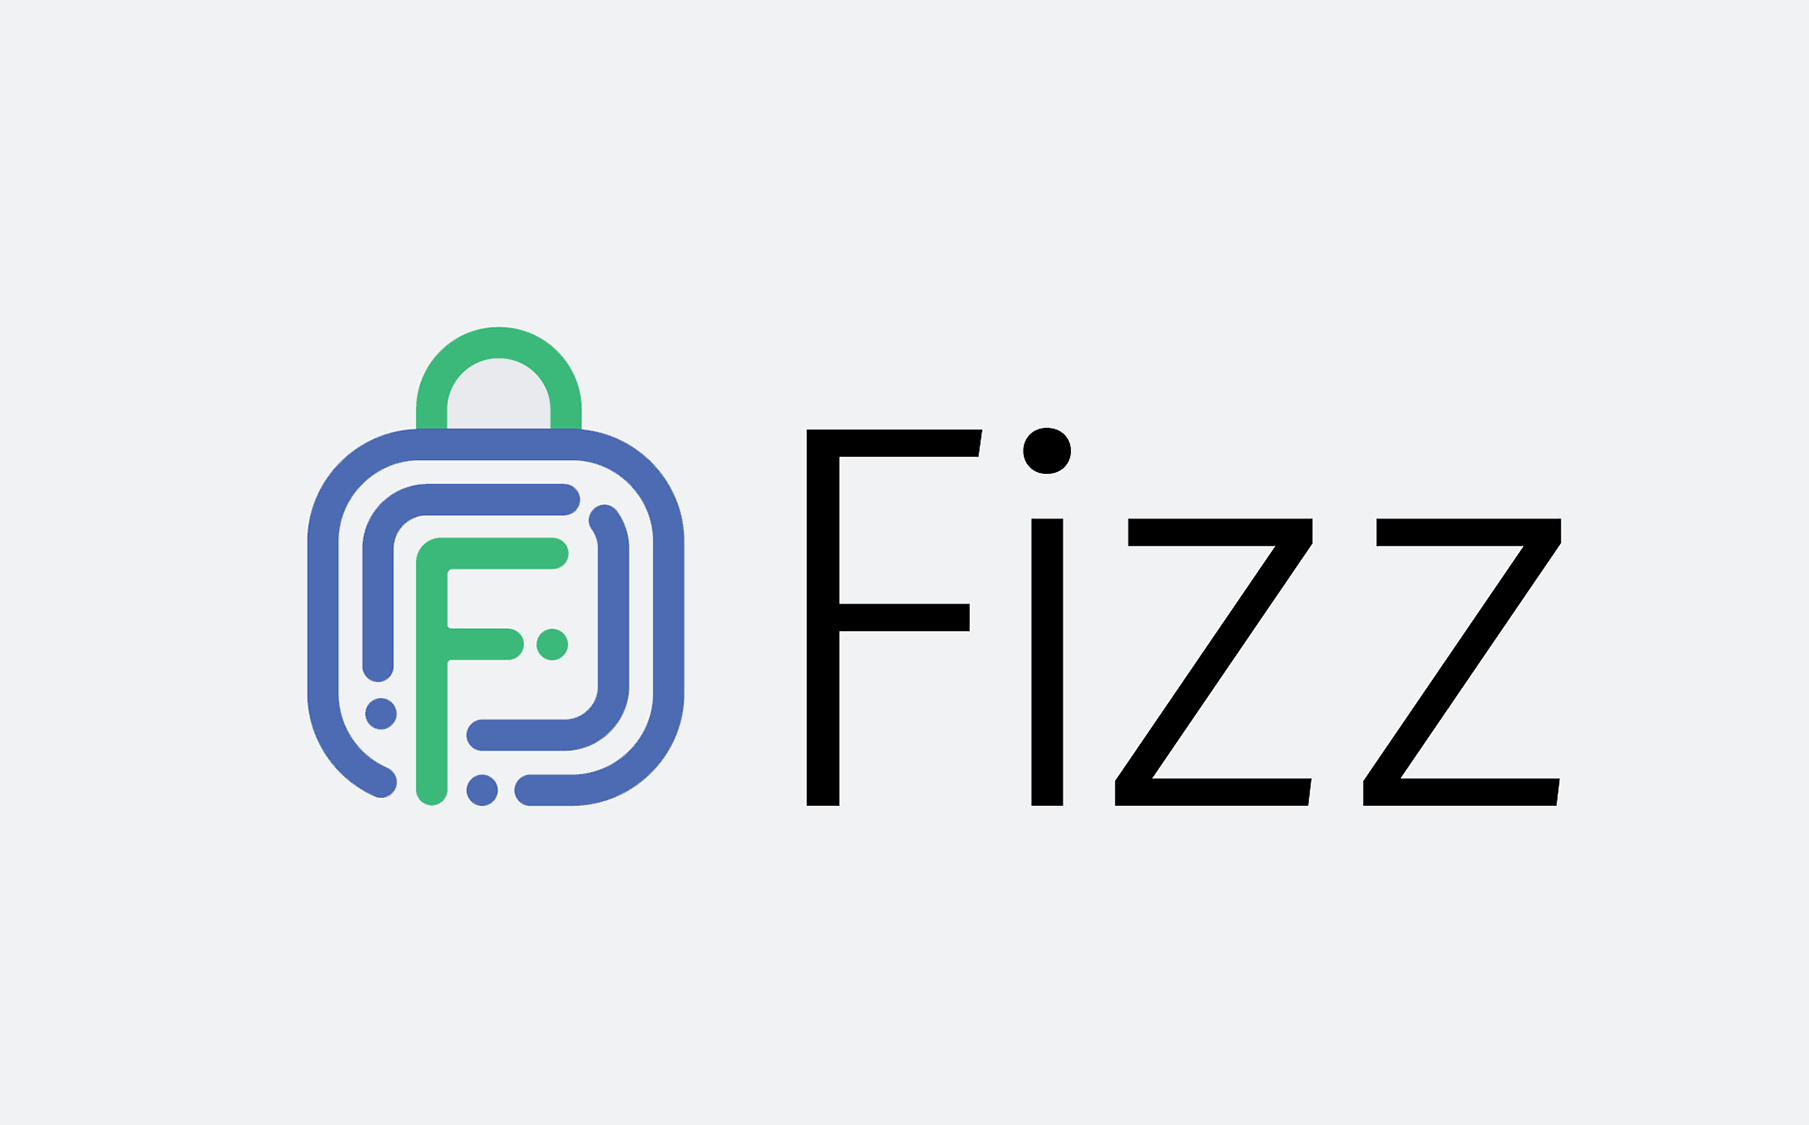 Deploying TLS 1.3 at scale with Fizz, a performant open source TLS library on Code.fb.com, Facebook's Engineering blog